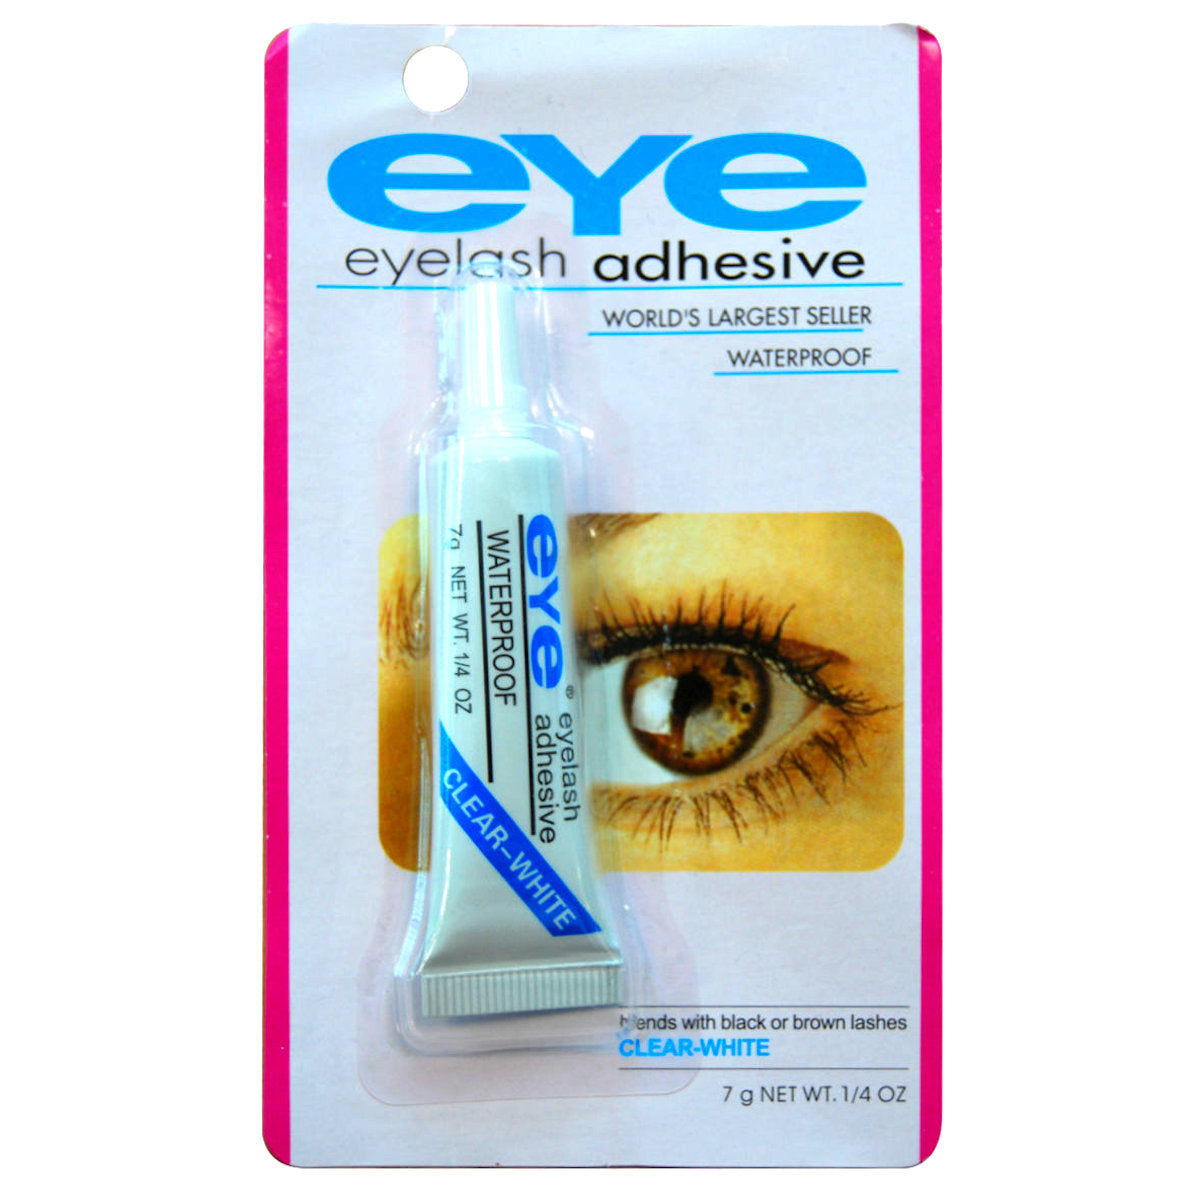 EYE Eyelash Adhesive 7gm Clear-White Waterproof glue Dries Clear